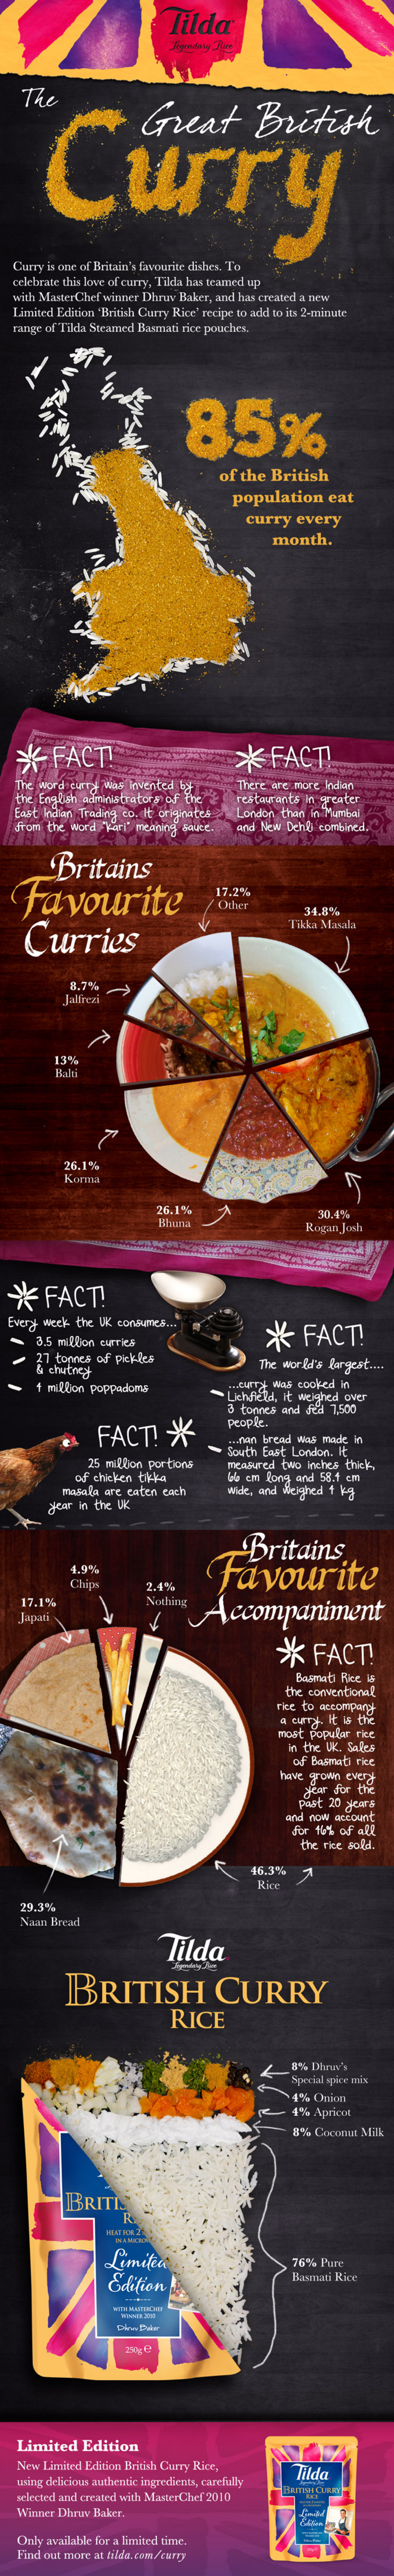 Great British Curry Rice Infographic